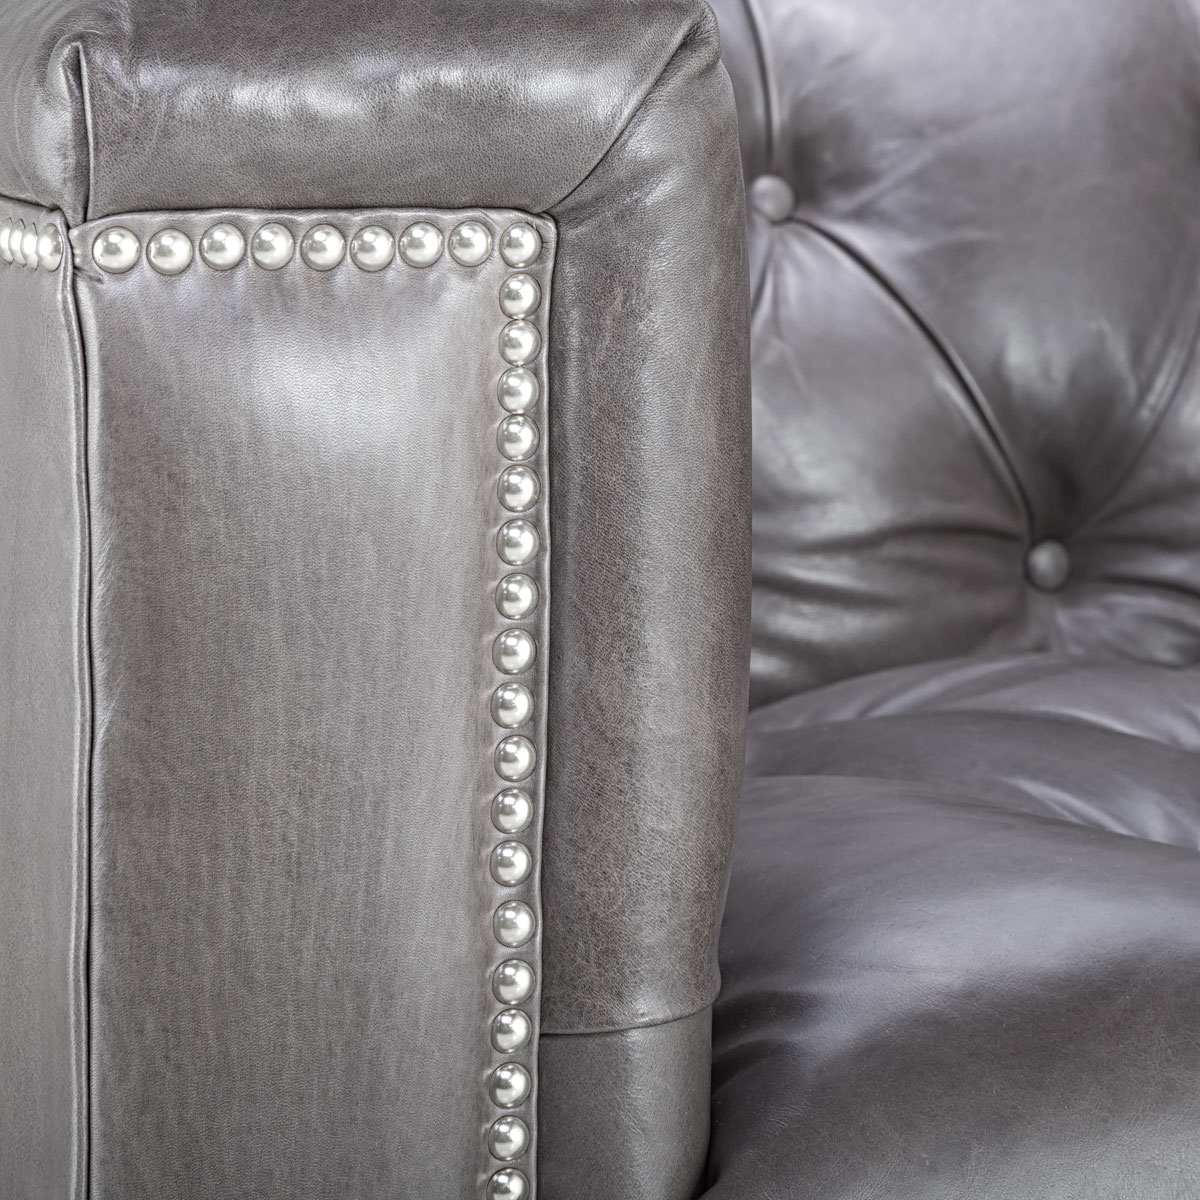 Contemporary Leather Tufted Nailhead Sofa Safavieh Com ~ Leather Sofa With Nailheads